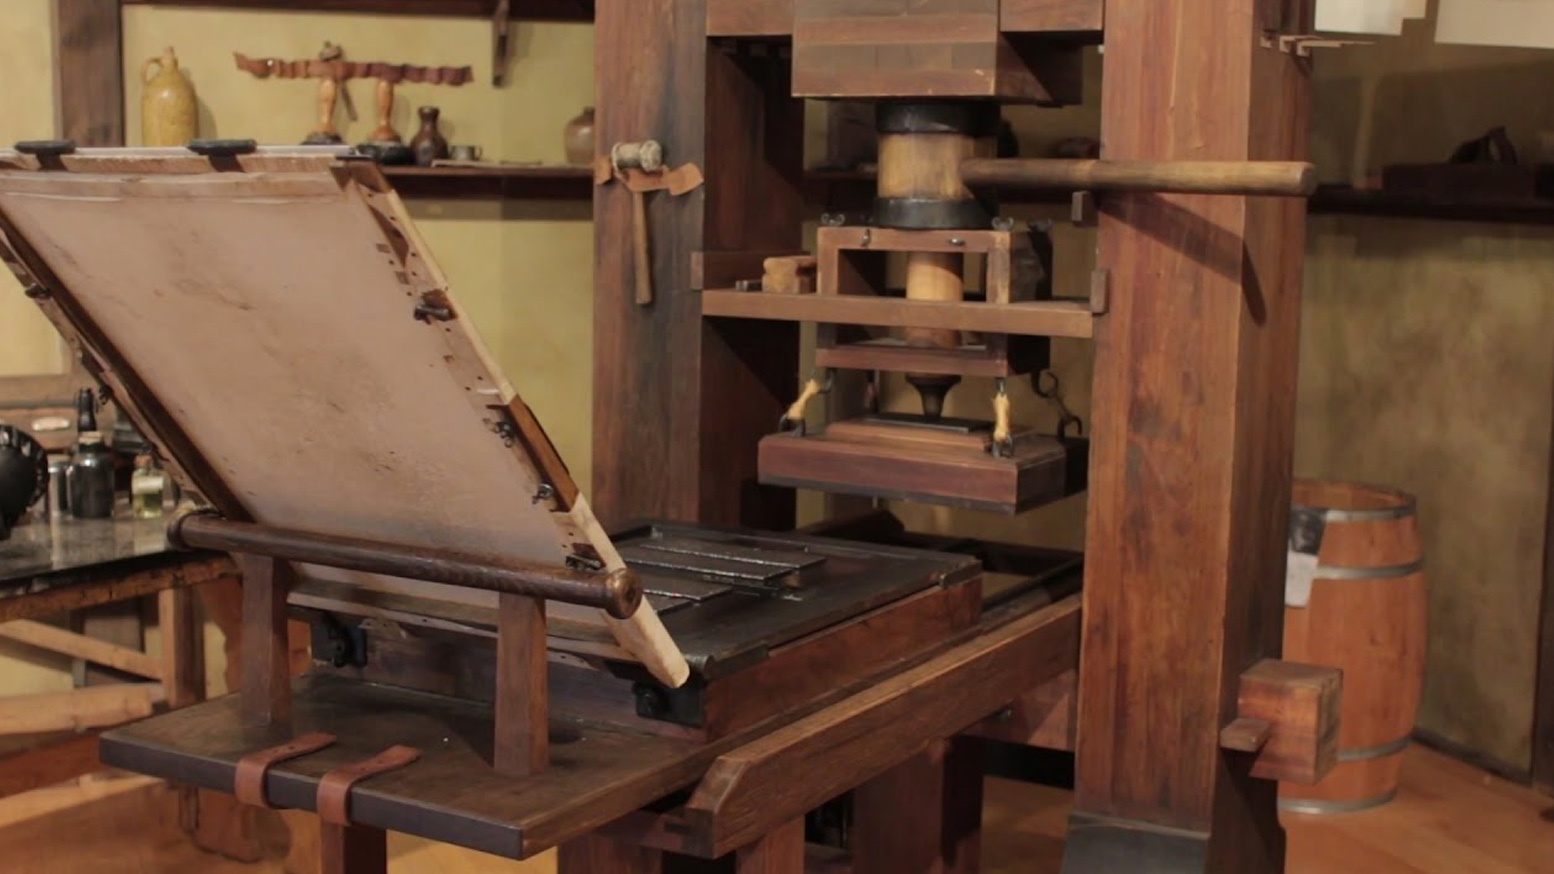 How Did The Invention Of Printing Press Change World Quora Diagram Year 1 And 2 Context Rotary Drawing Inspiration From Movable Types East Asia Screw Type Farmers In Europe Gutenberg Invented His Famous